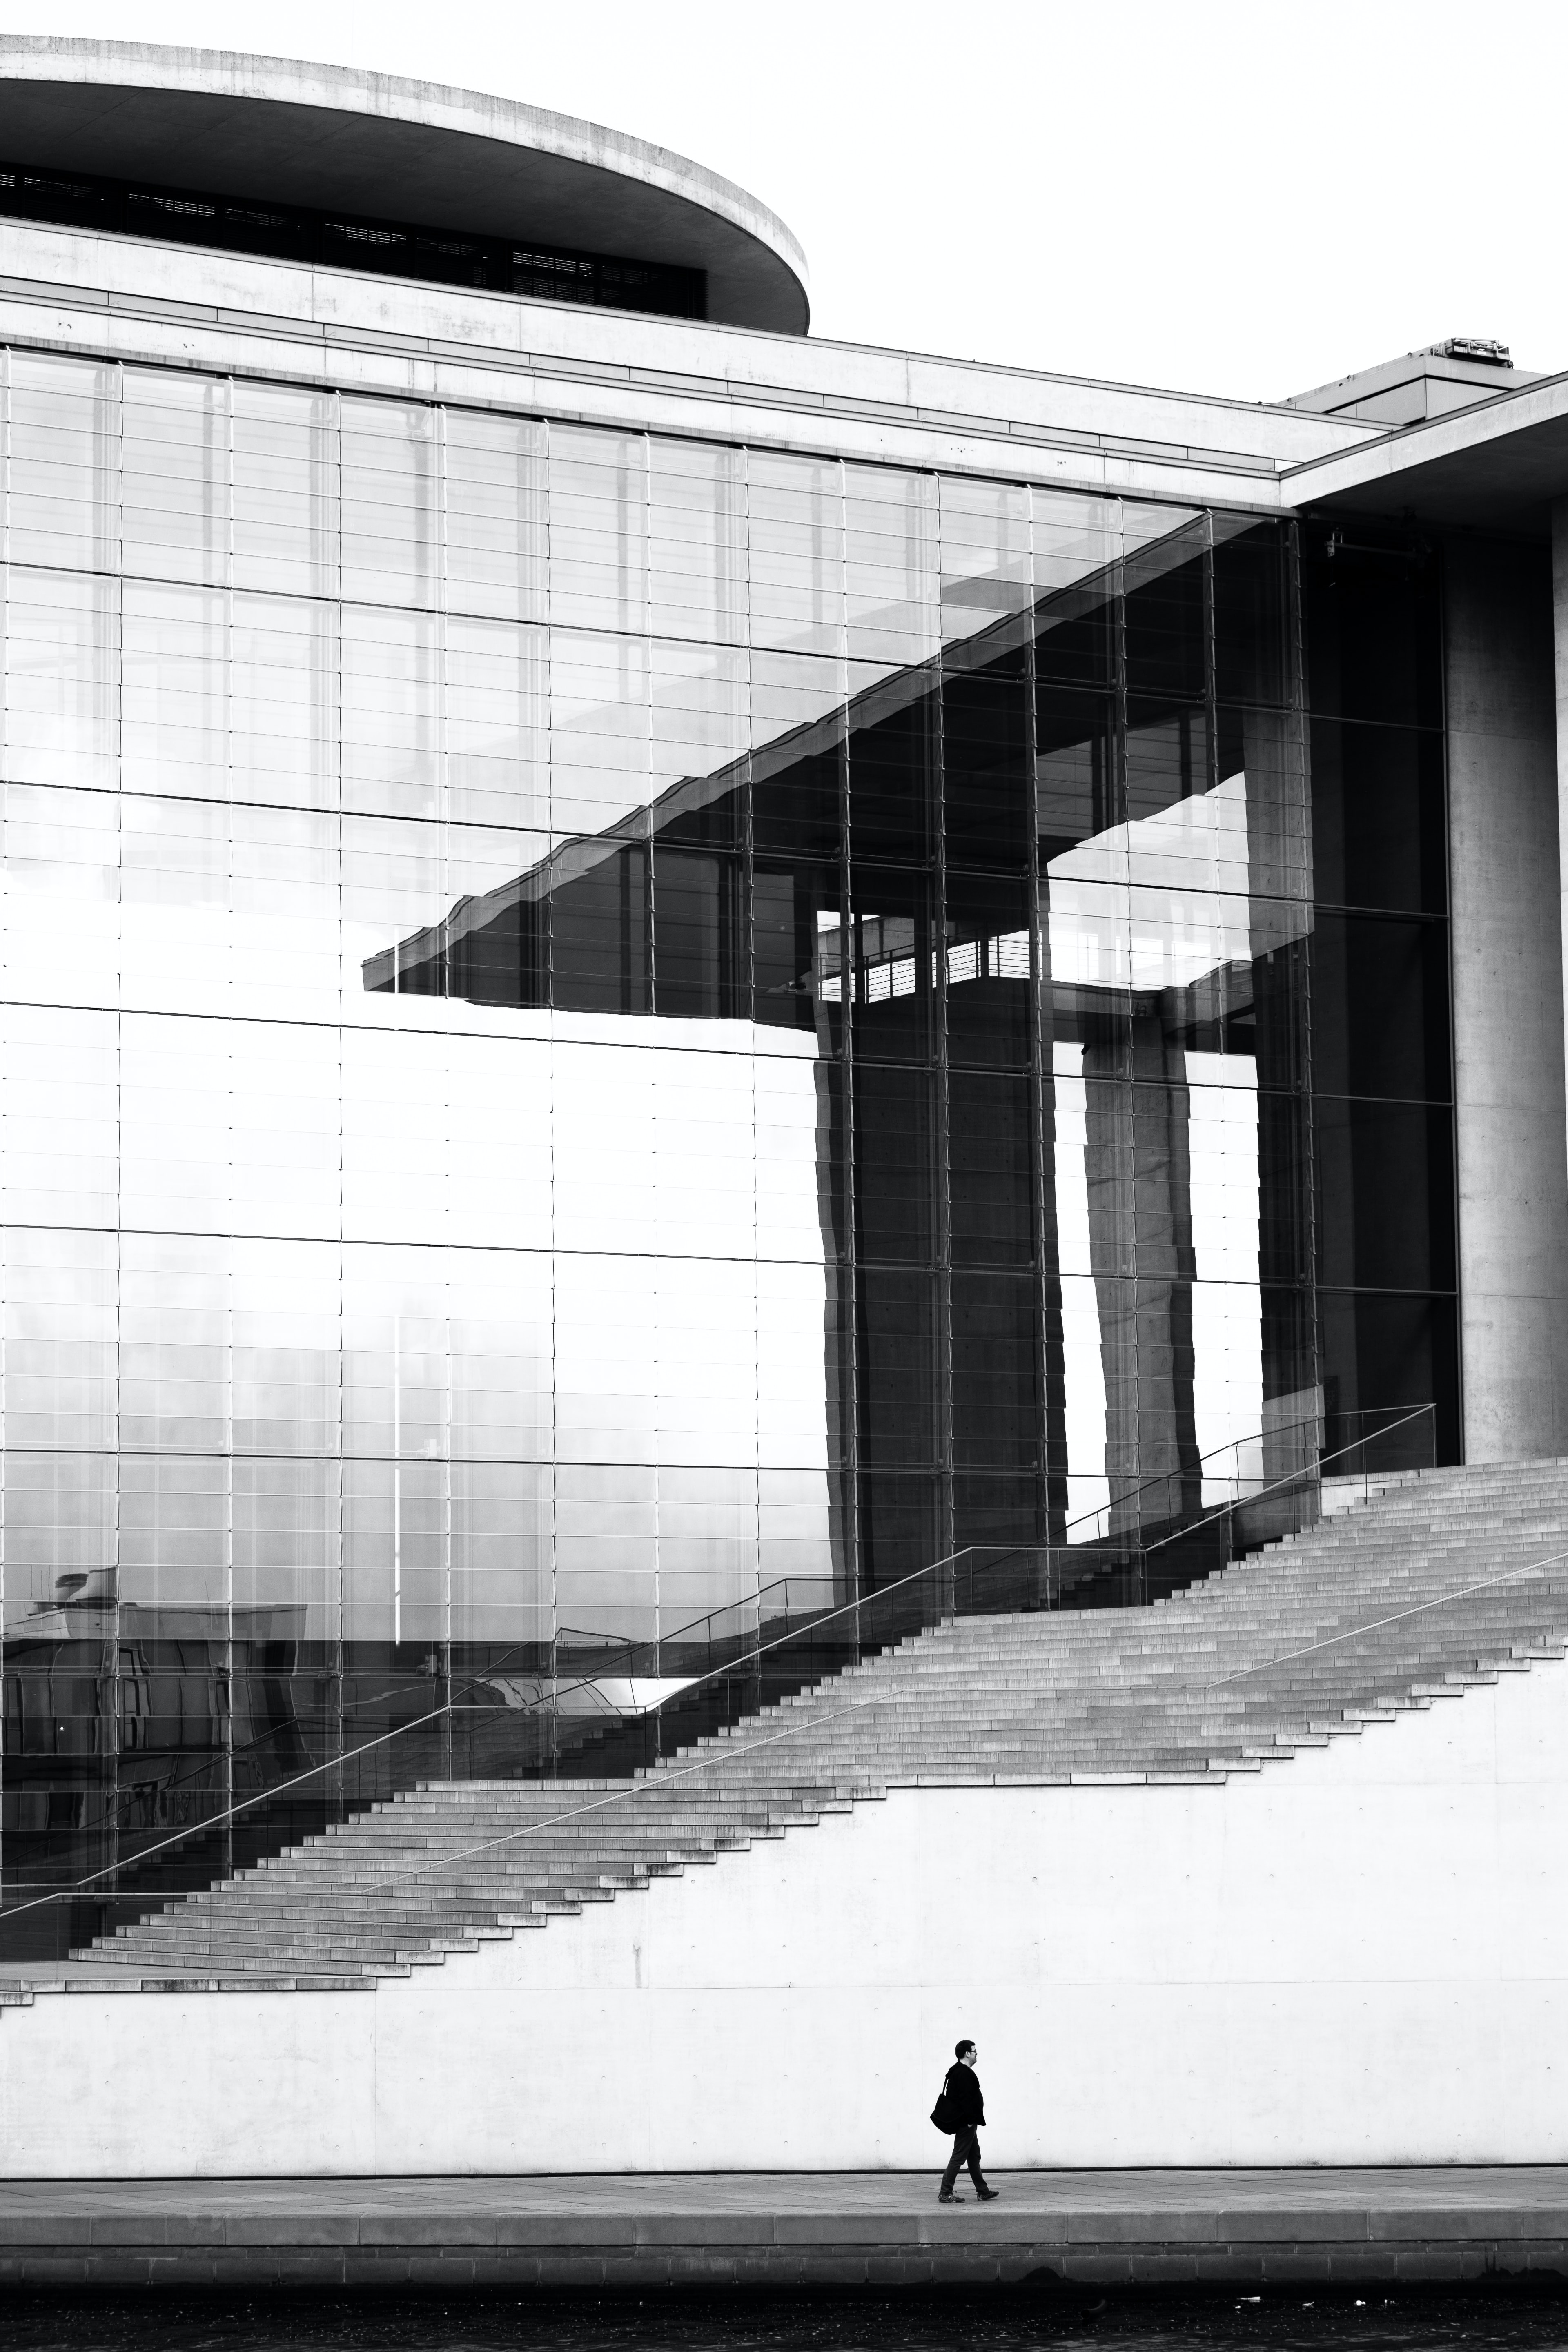 grayscale photo of man walking on concrete pavement beside high building